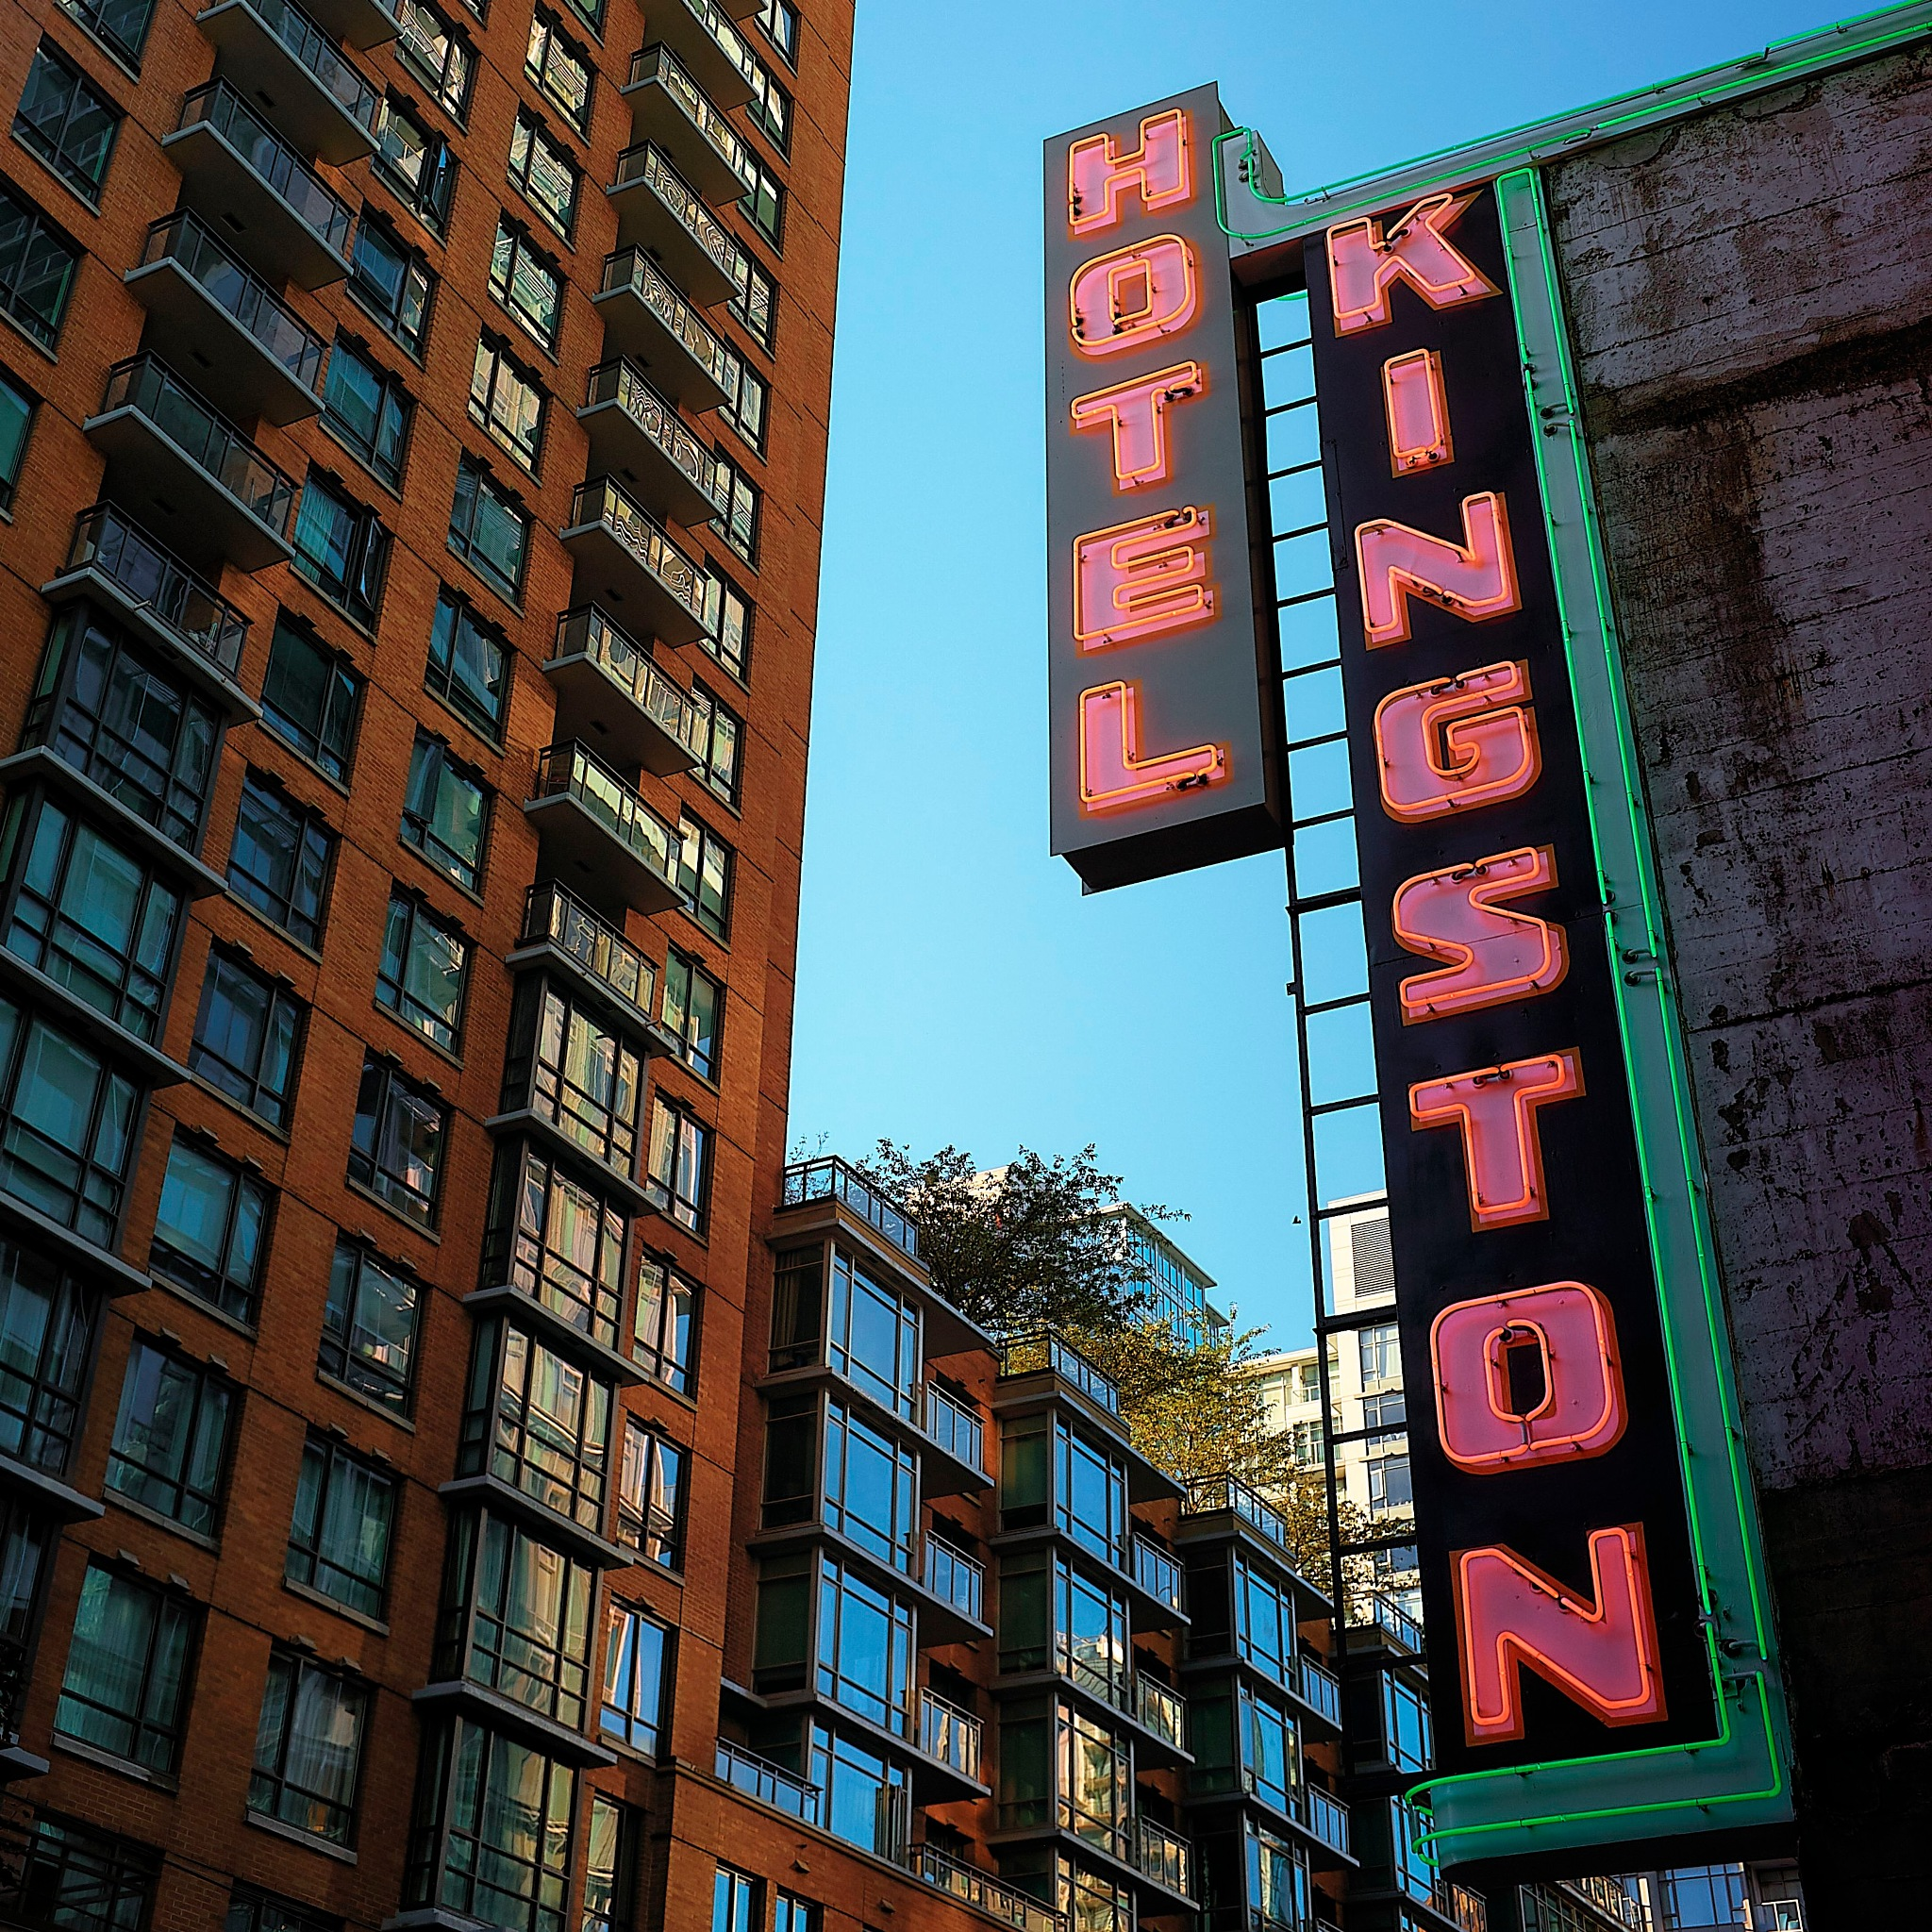 The Hotel Kingston by Greg Mullaly